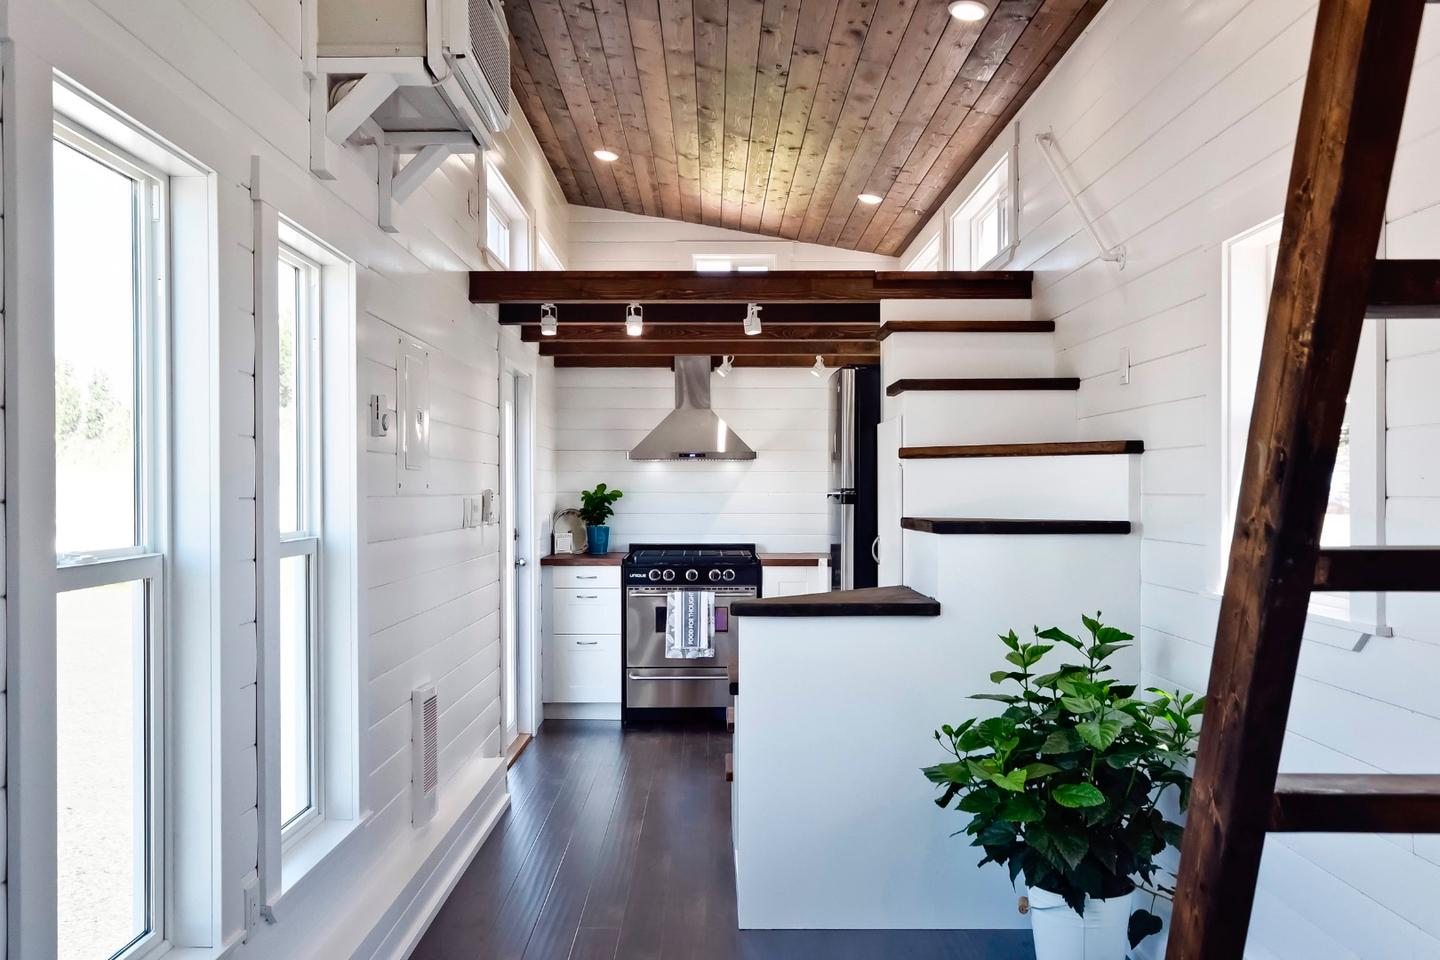 The interior of the home comprises a total floorspace of 326 sq ft (30 sq m), which is pretty big for a tiny house